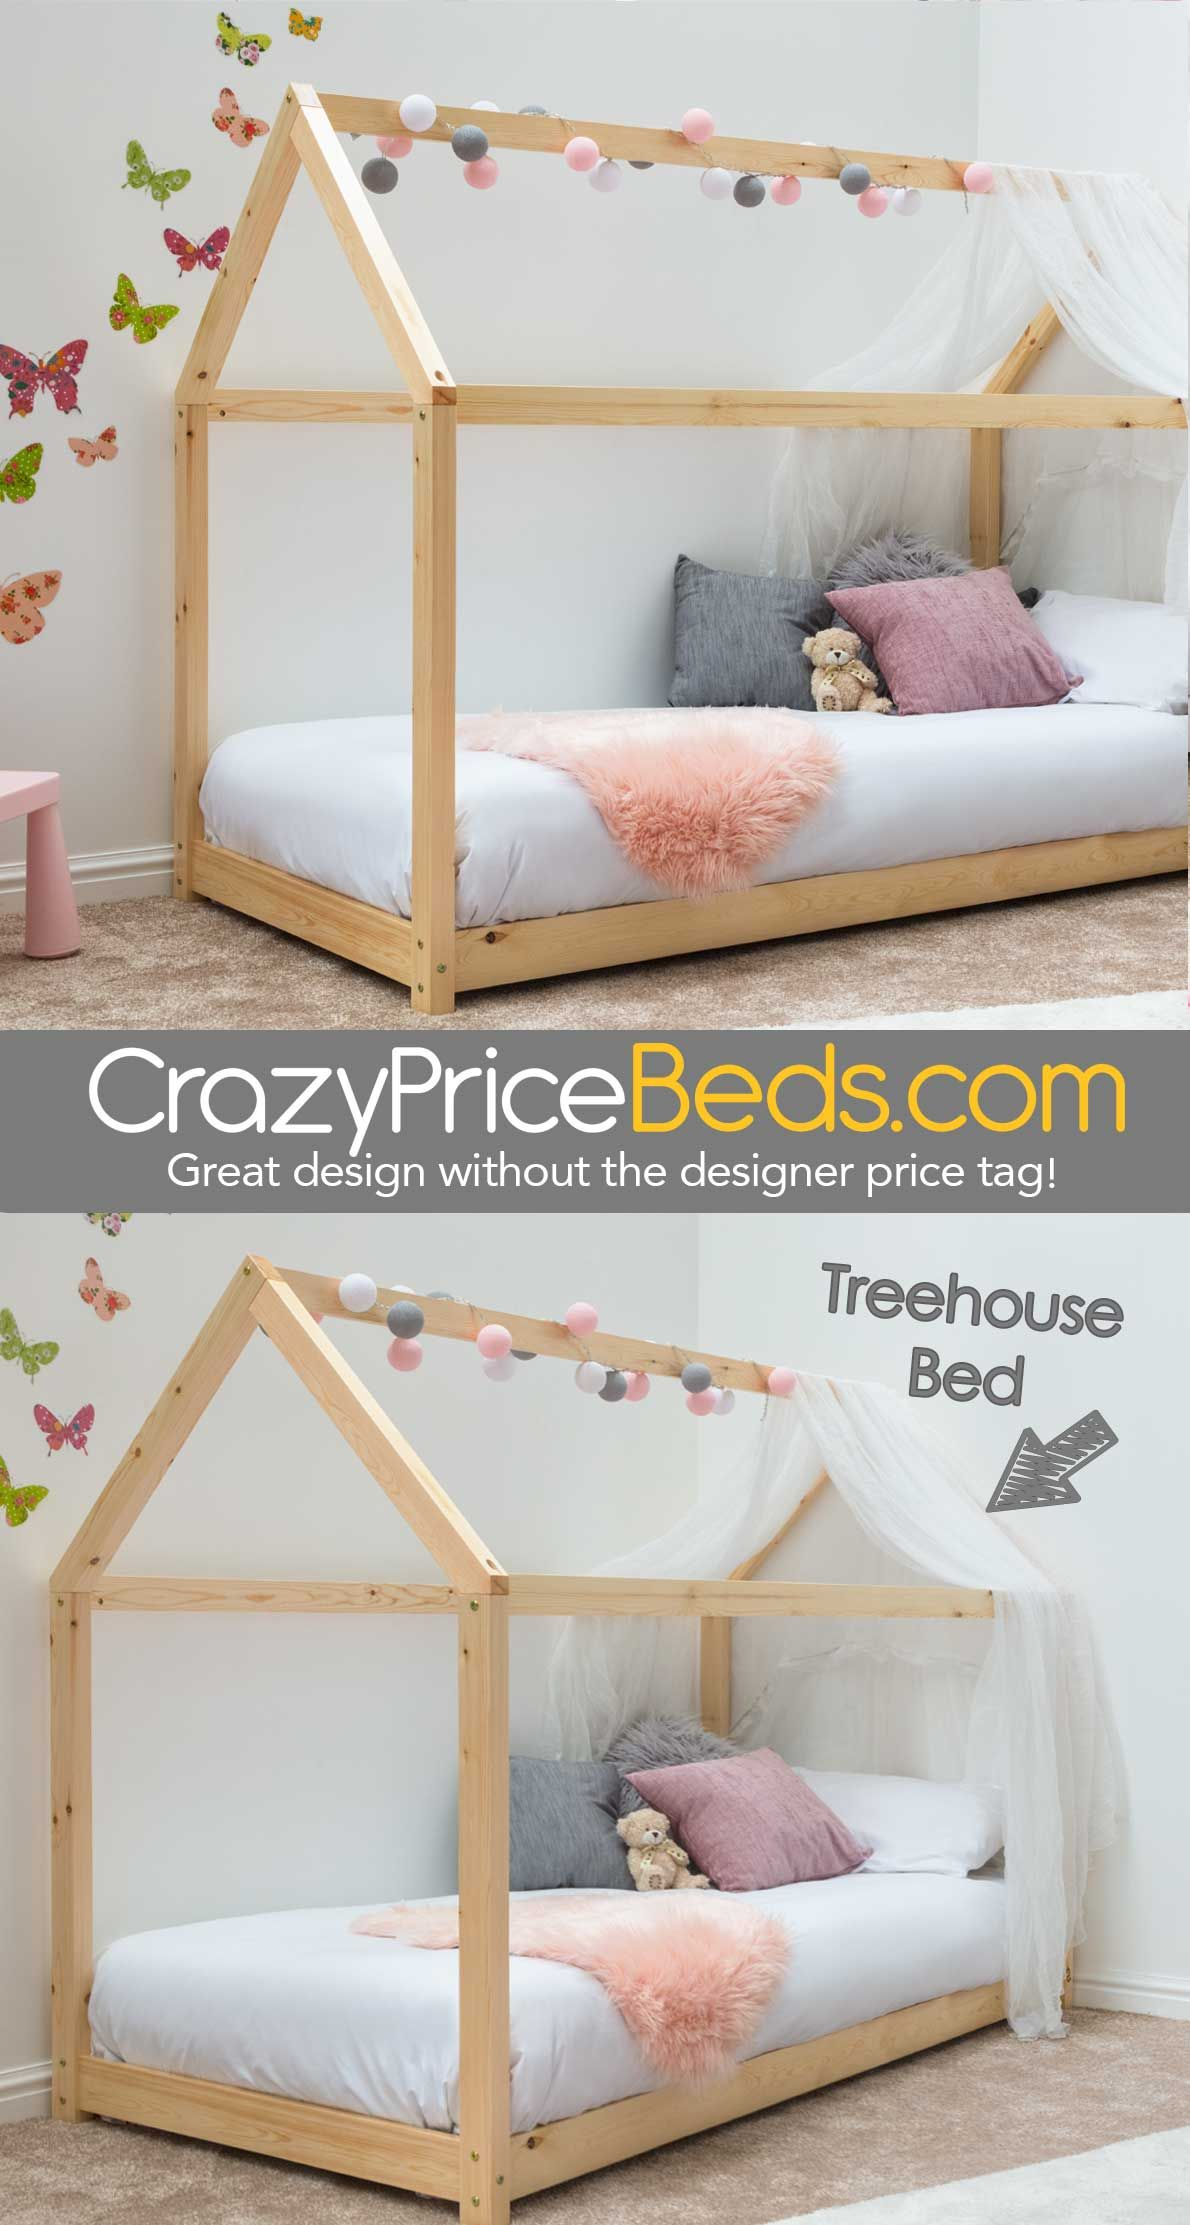 House Bed Frame Uk Treehouse House Style Natural Pine Wooden Kids Bed Frame Single